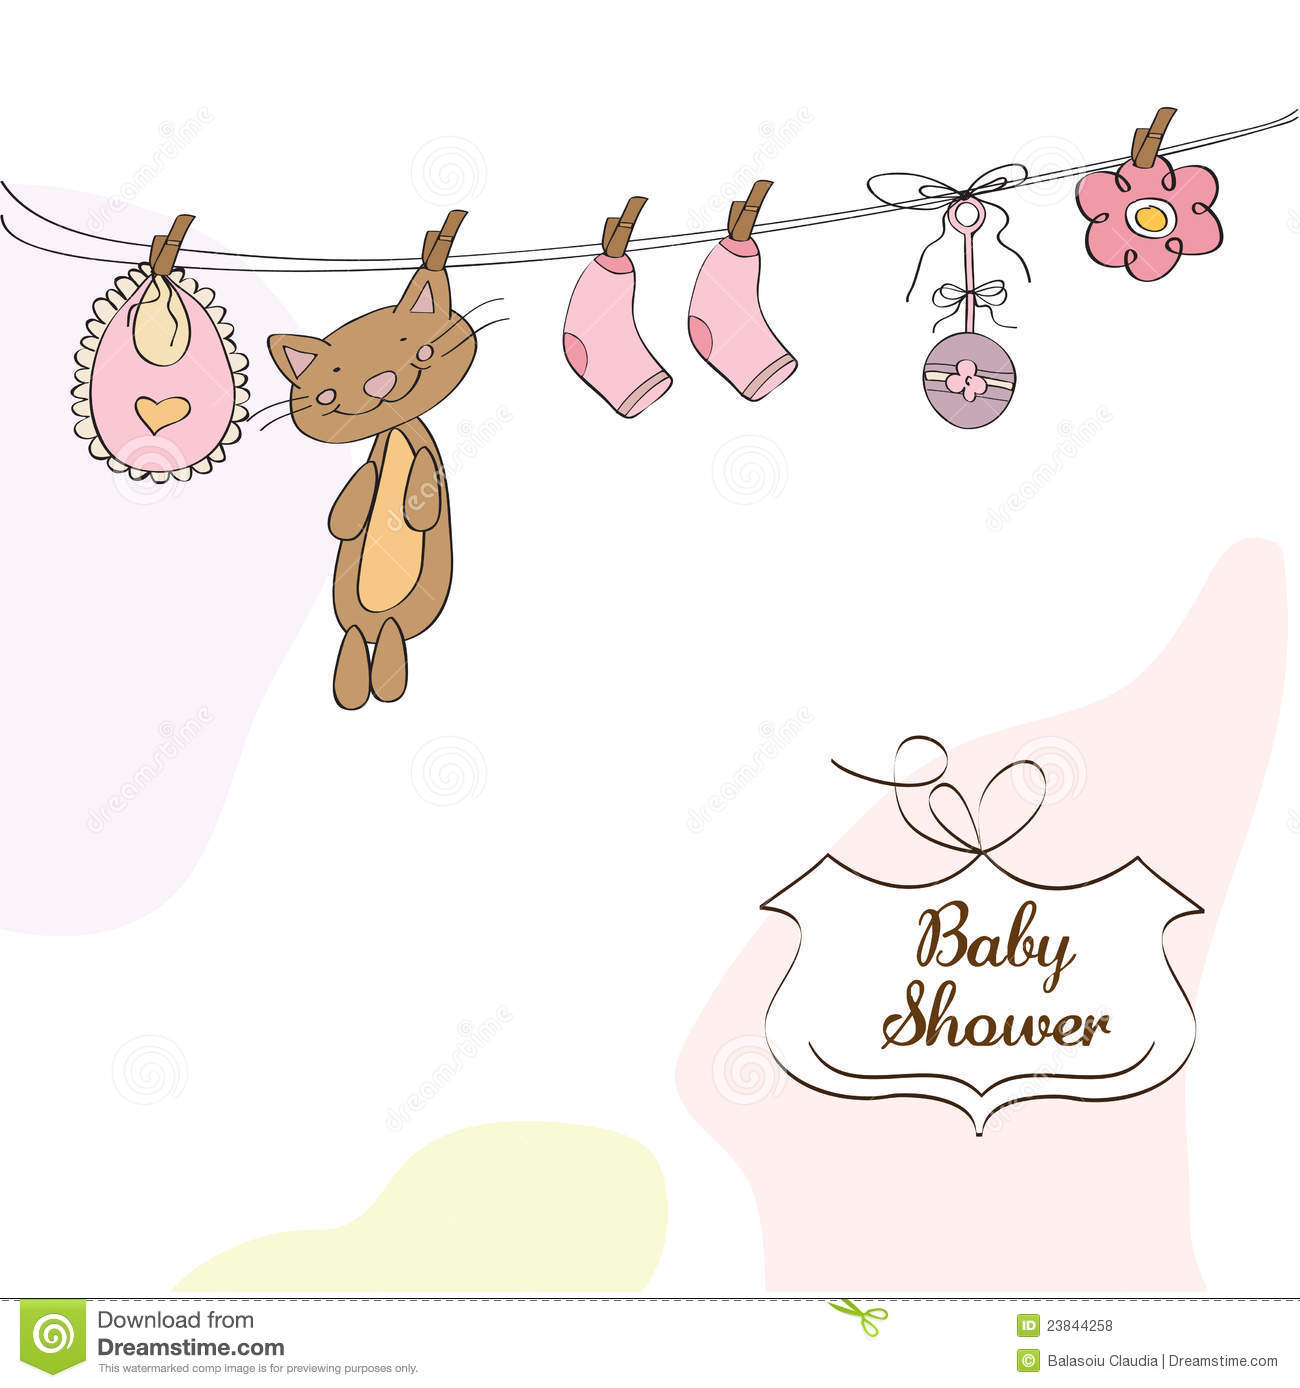 Baby Girl Shower Invitation Card Stock Vector Illustration Of - Card template free: invitation card template for baby shower